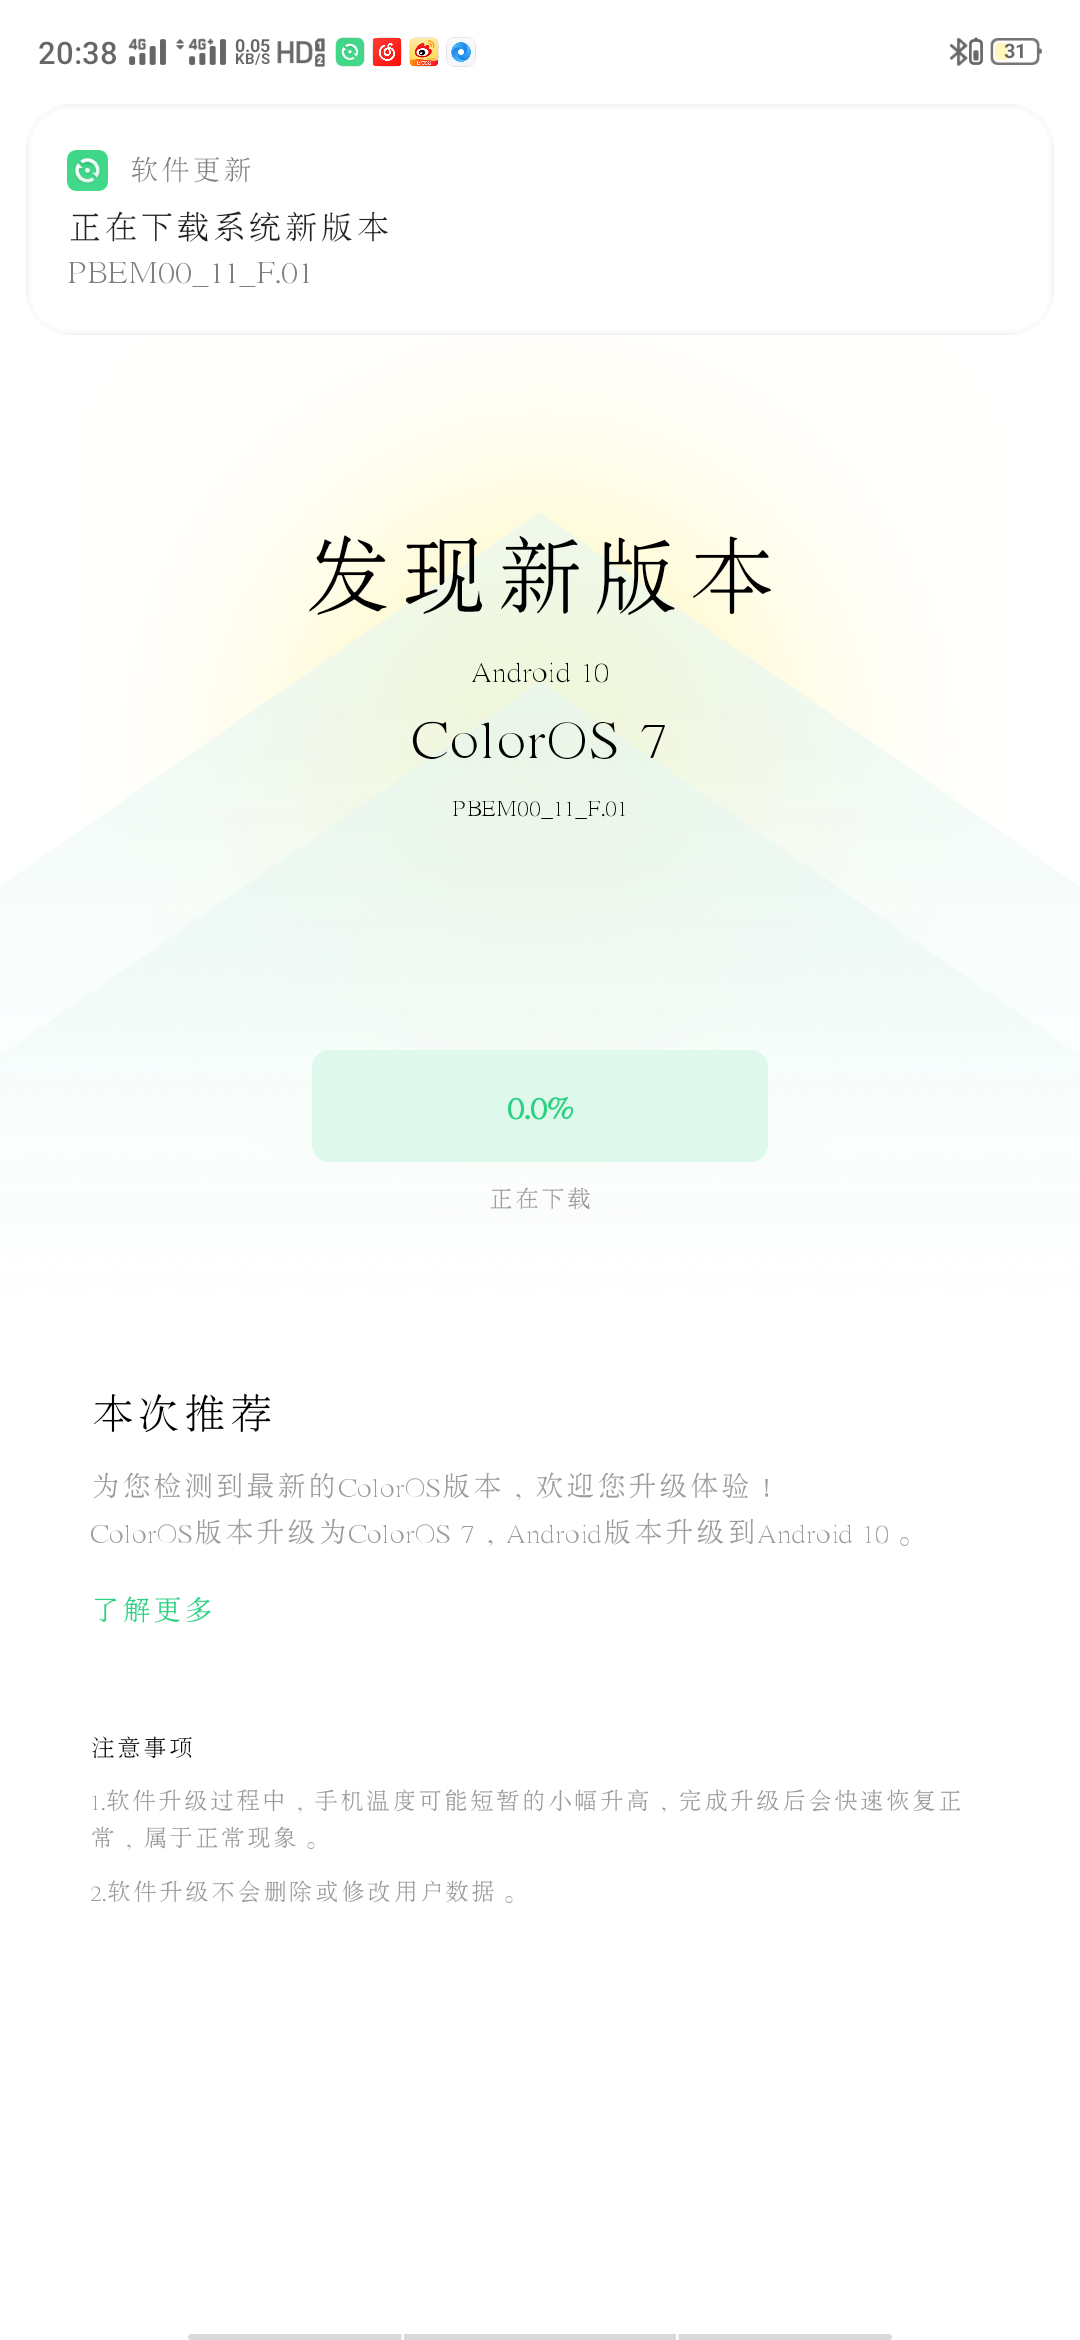 ColorOS 7 based on Android 10 for OPPO R17